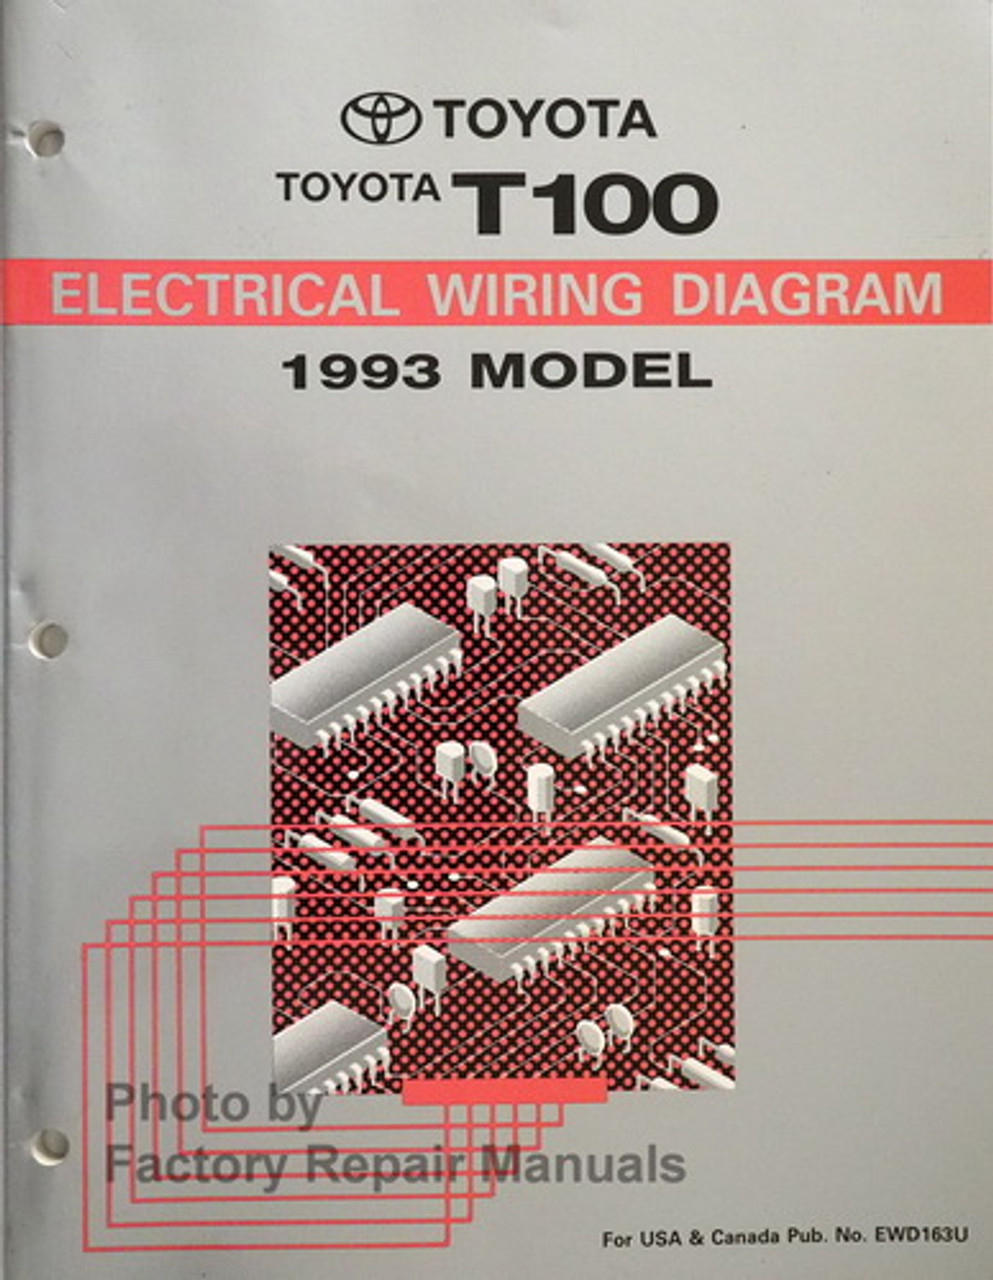 1993 toyota t100 truck electrical wiring diagrams original - factory repair  manuals  factory repair manuals